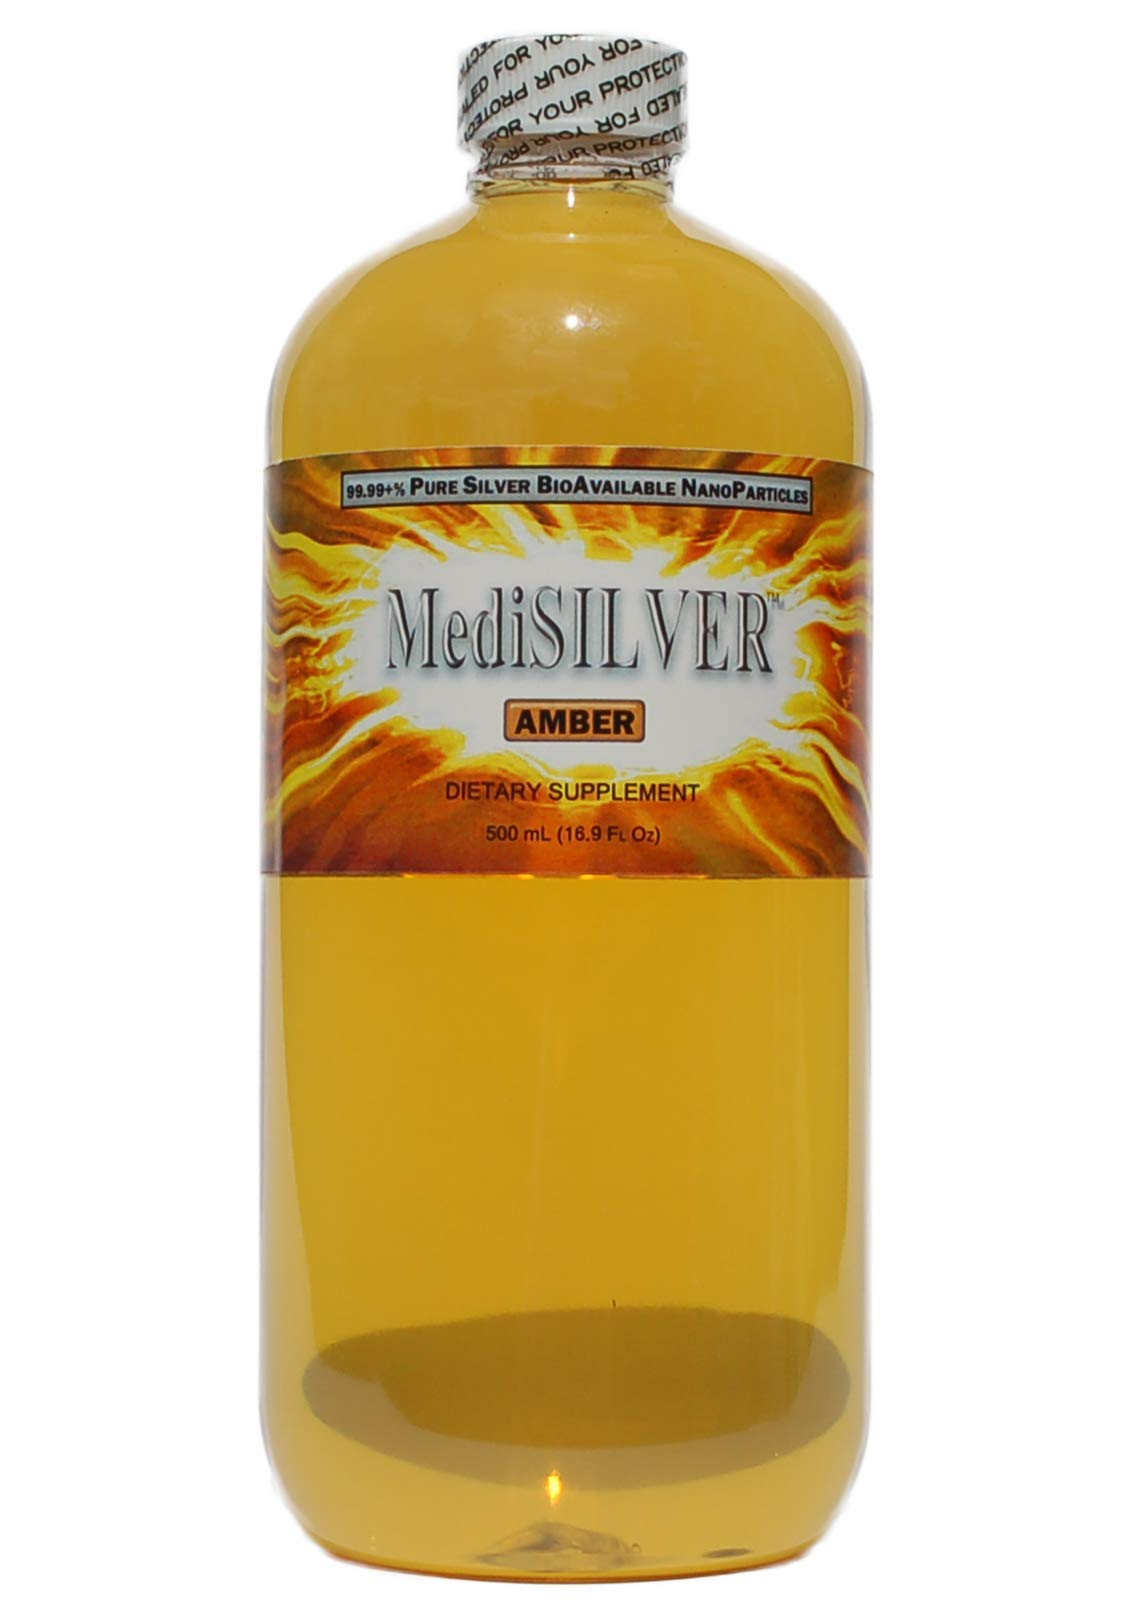 MediSILVER Amber Traditional colloidal Silver - 500 mL in BPA Free Plastic Bottle